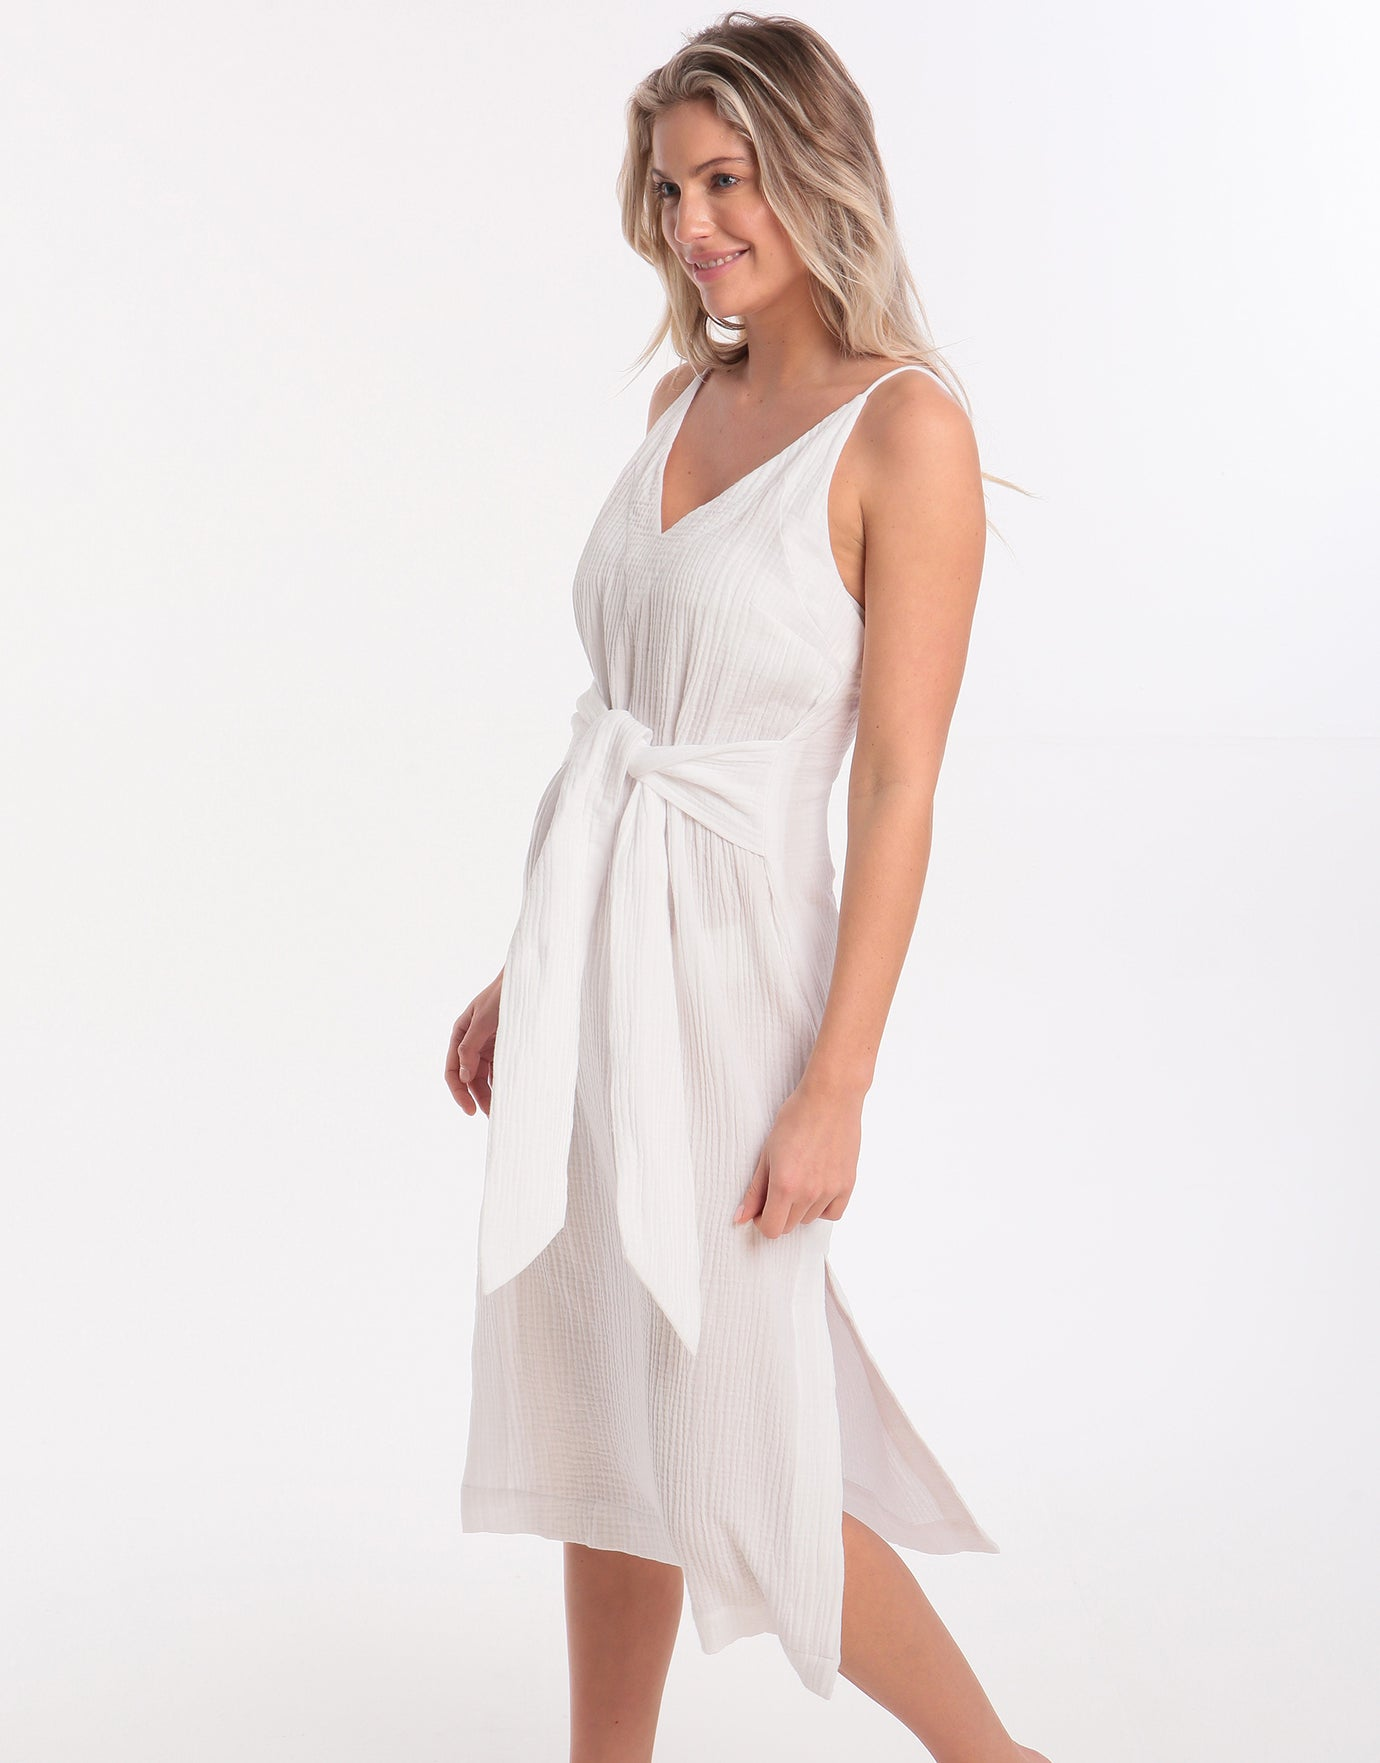 Seafolly Tie Front Slip Dress - White